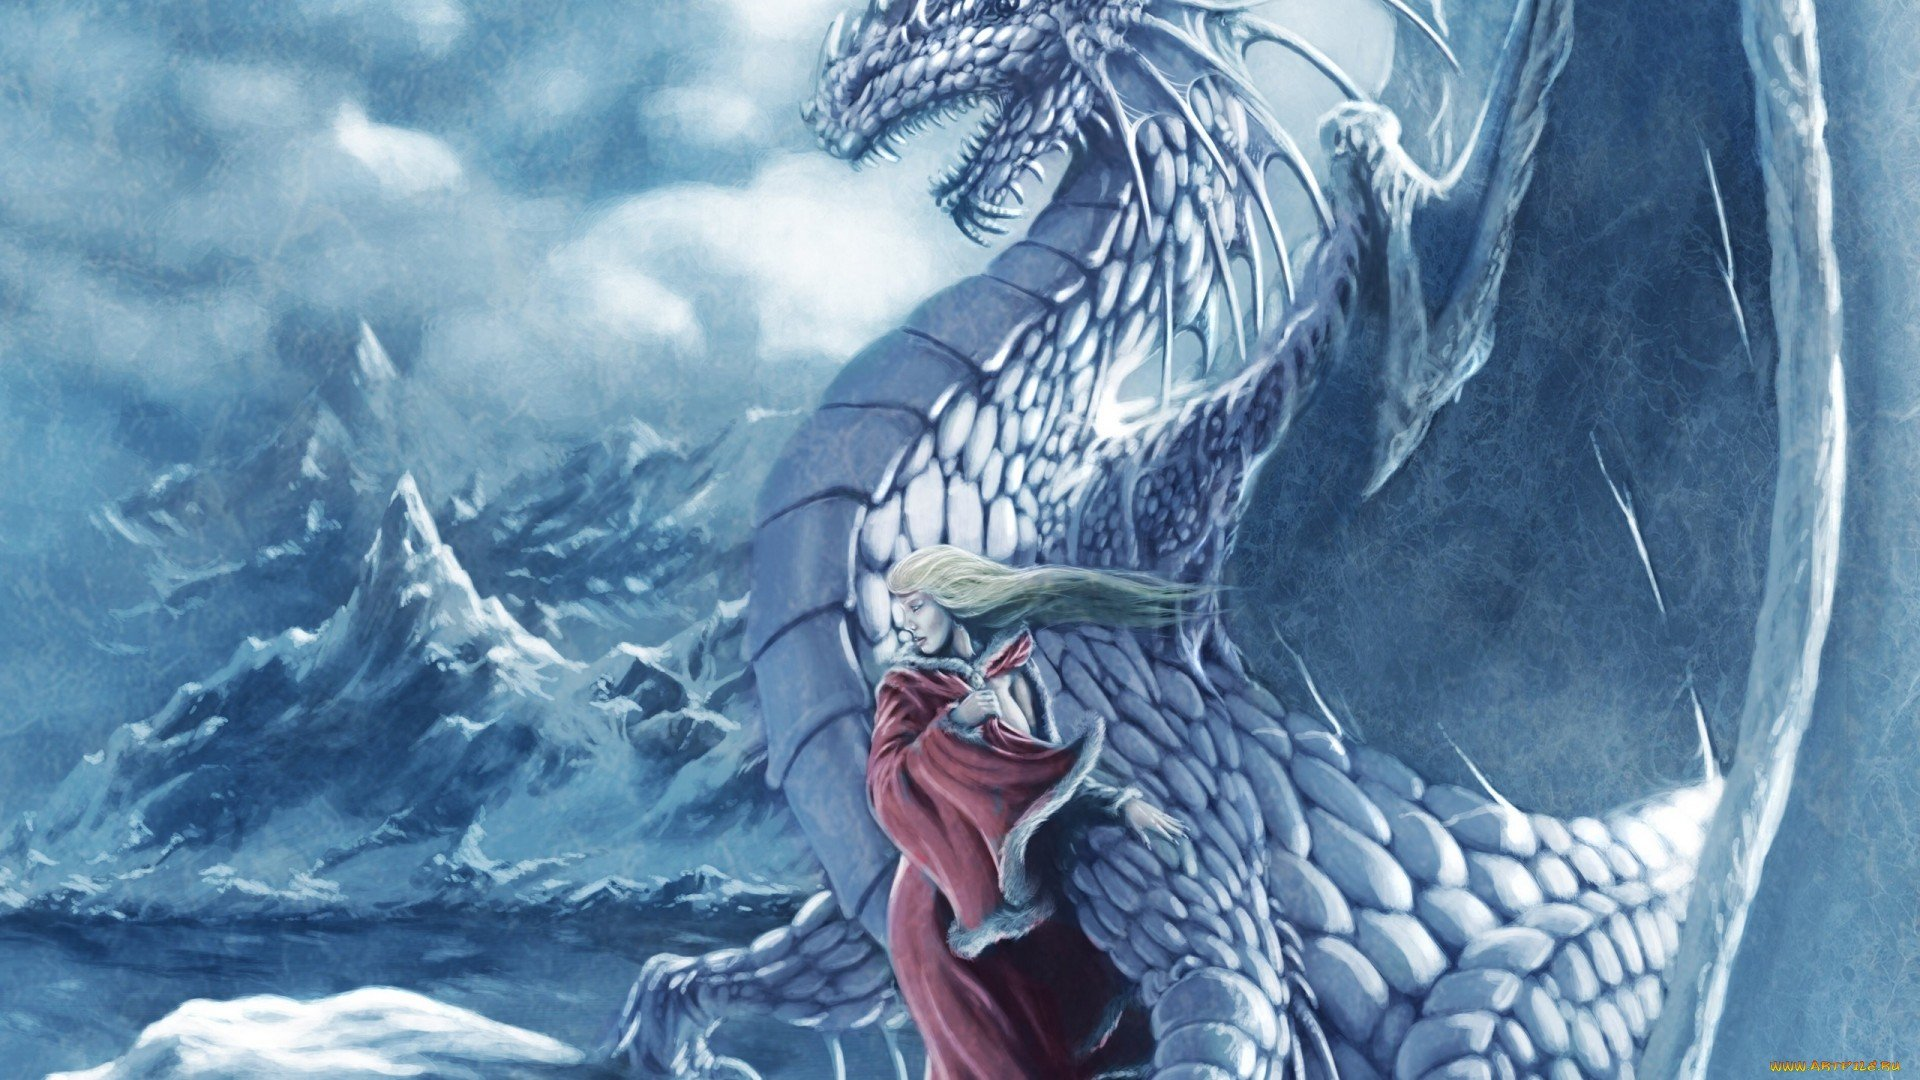 Free Wallpaper Dragons Posted By Ryan Cunningham